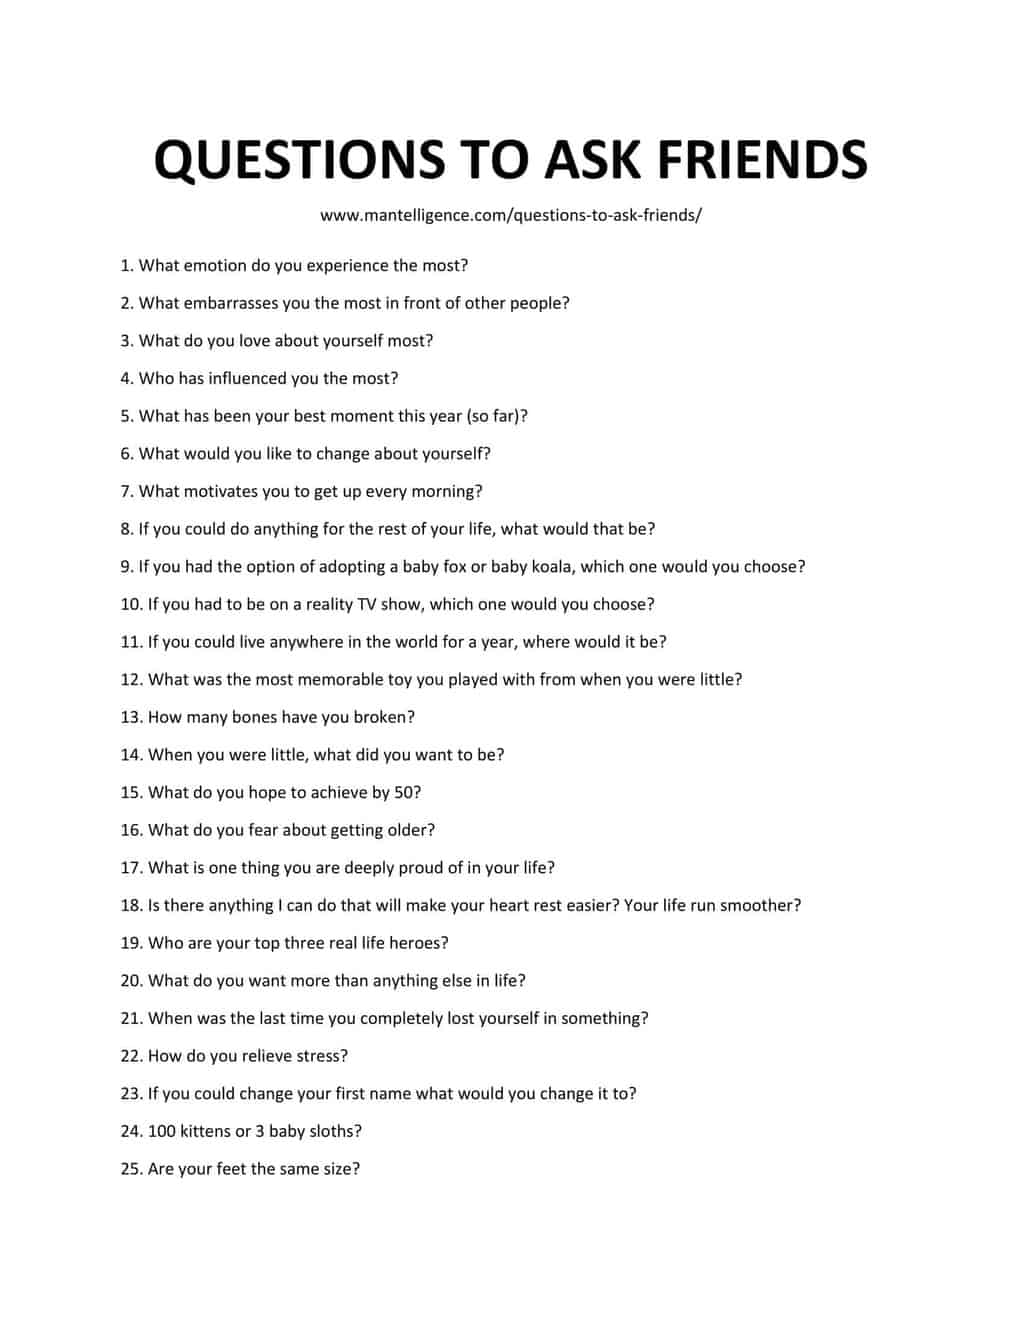 List of Questions To Ask Friends